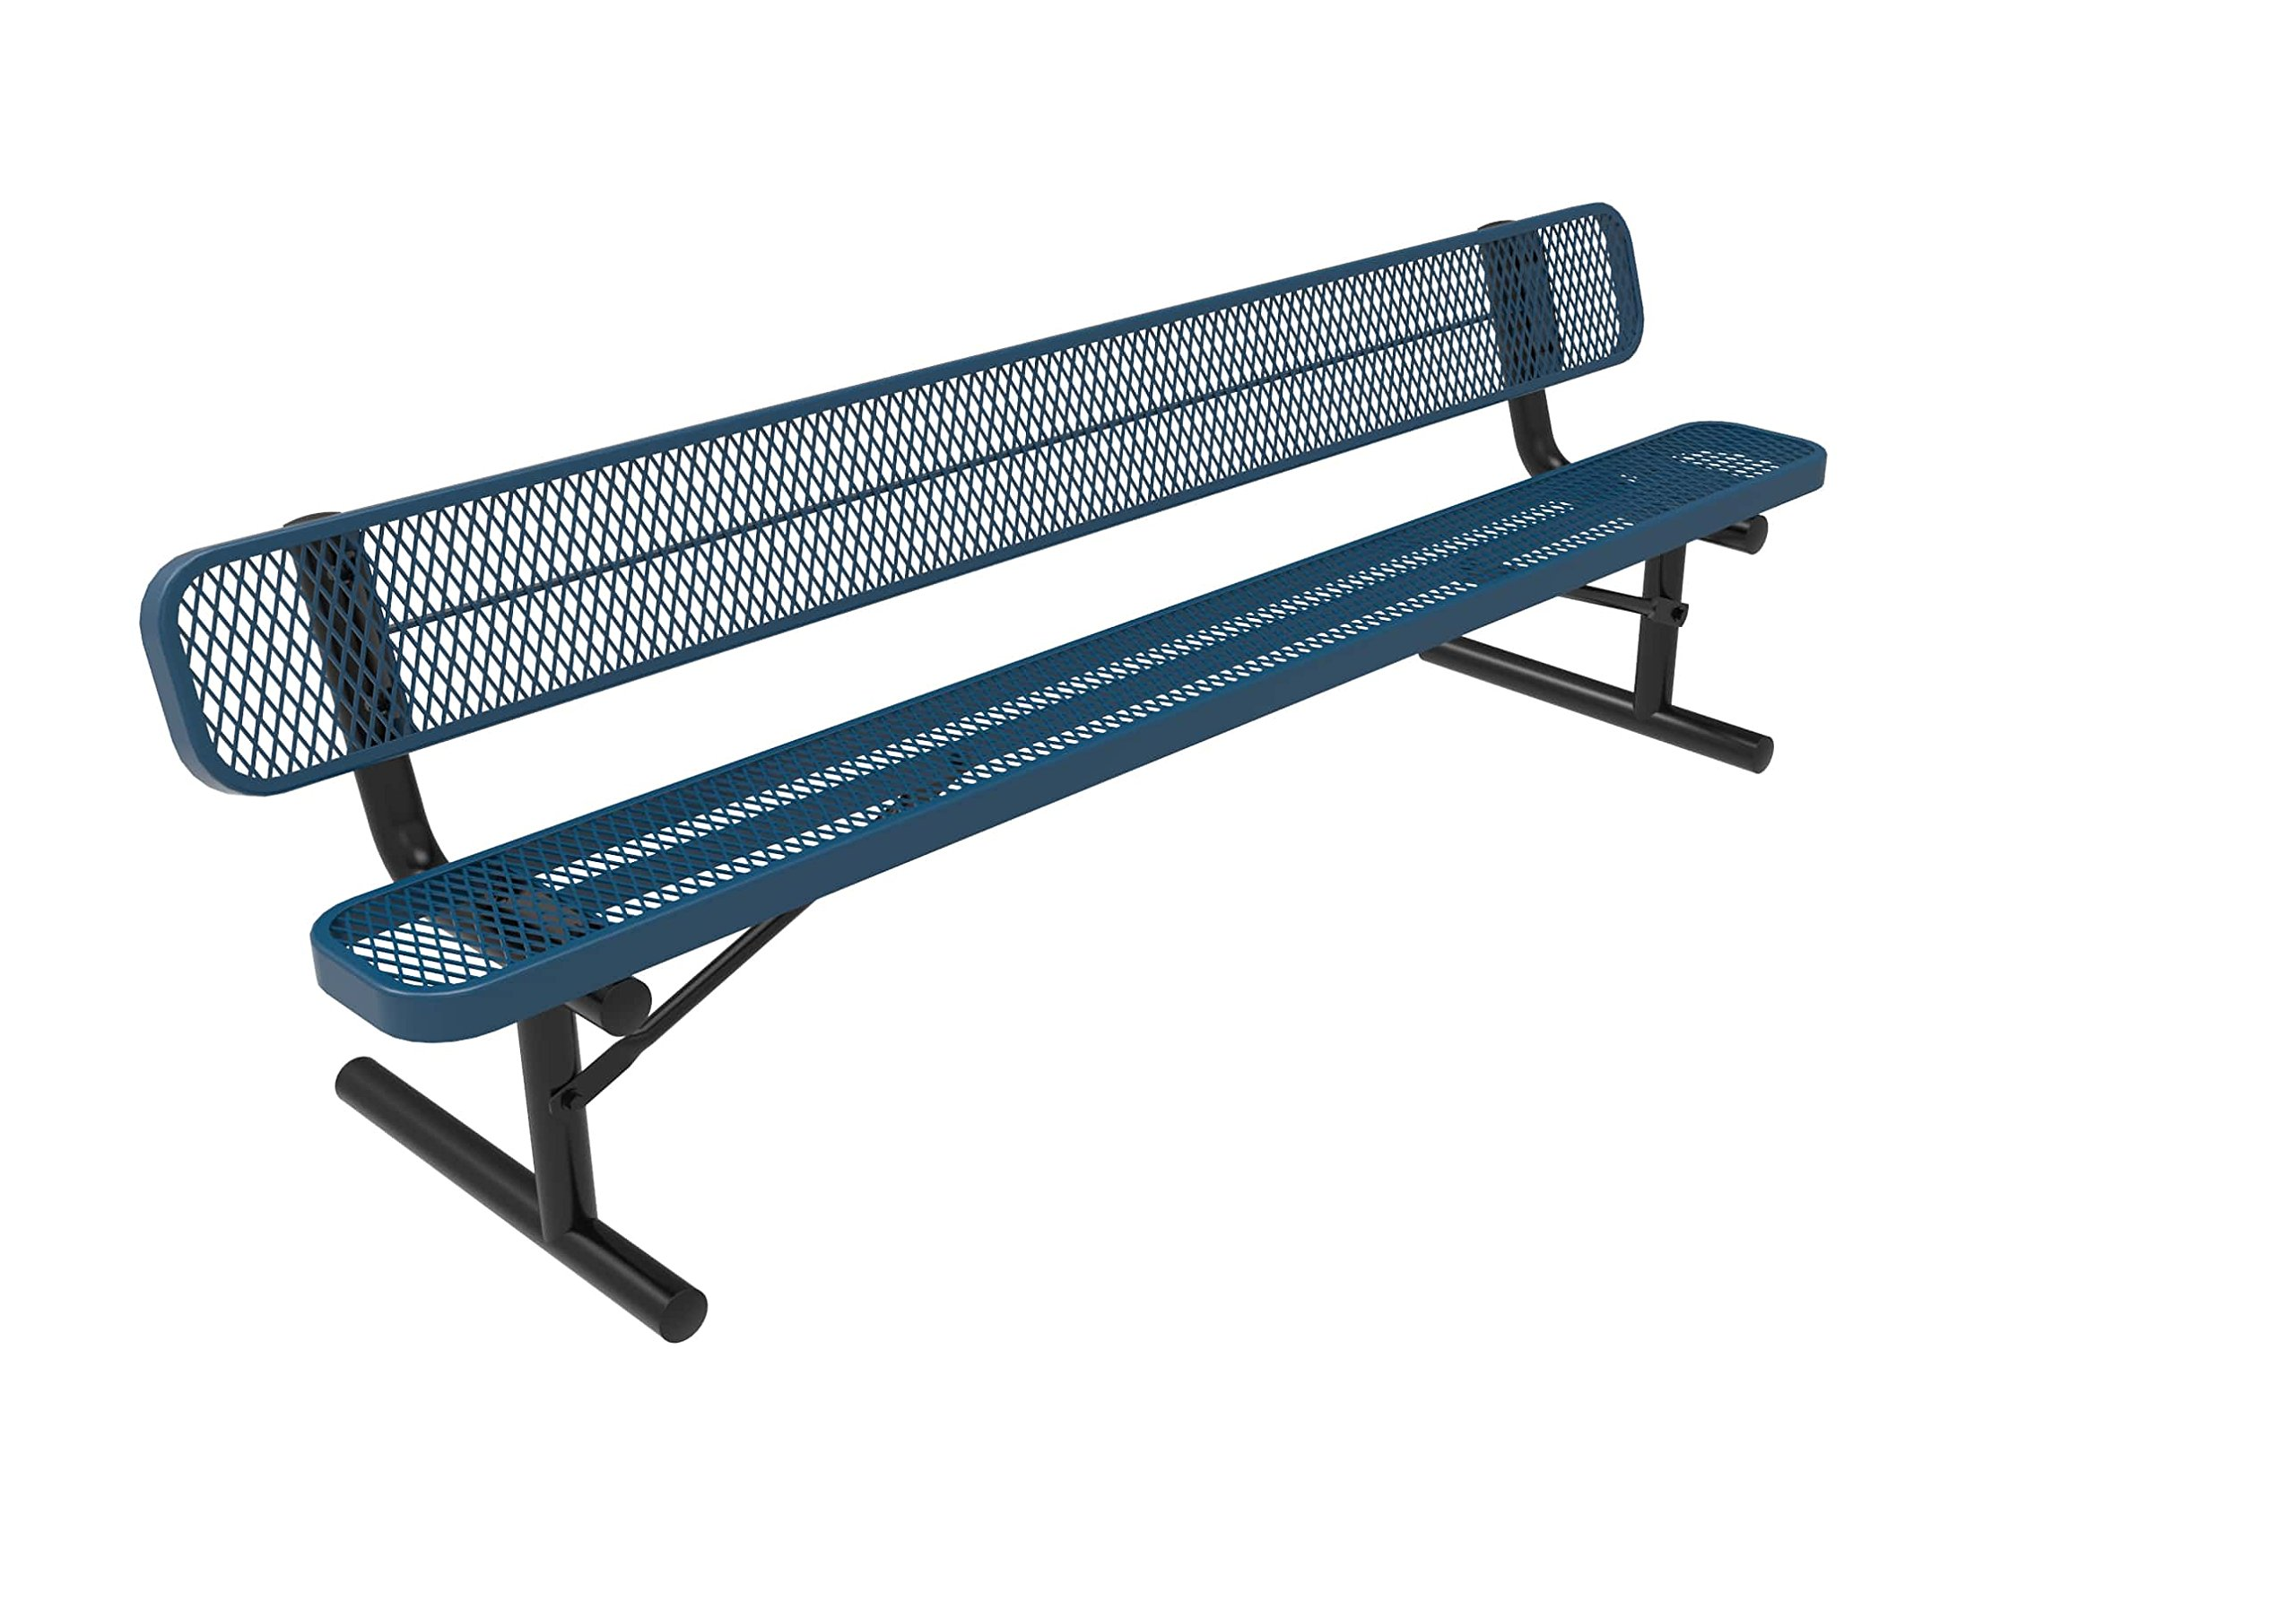 Coated Outdoor Furniture B8WBP-LBL Park Bench with Back, 8 Feet, Light Blue by CoatedOutdoorFurniture